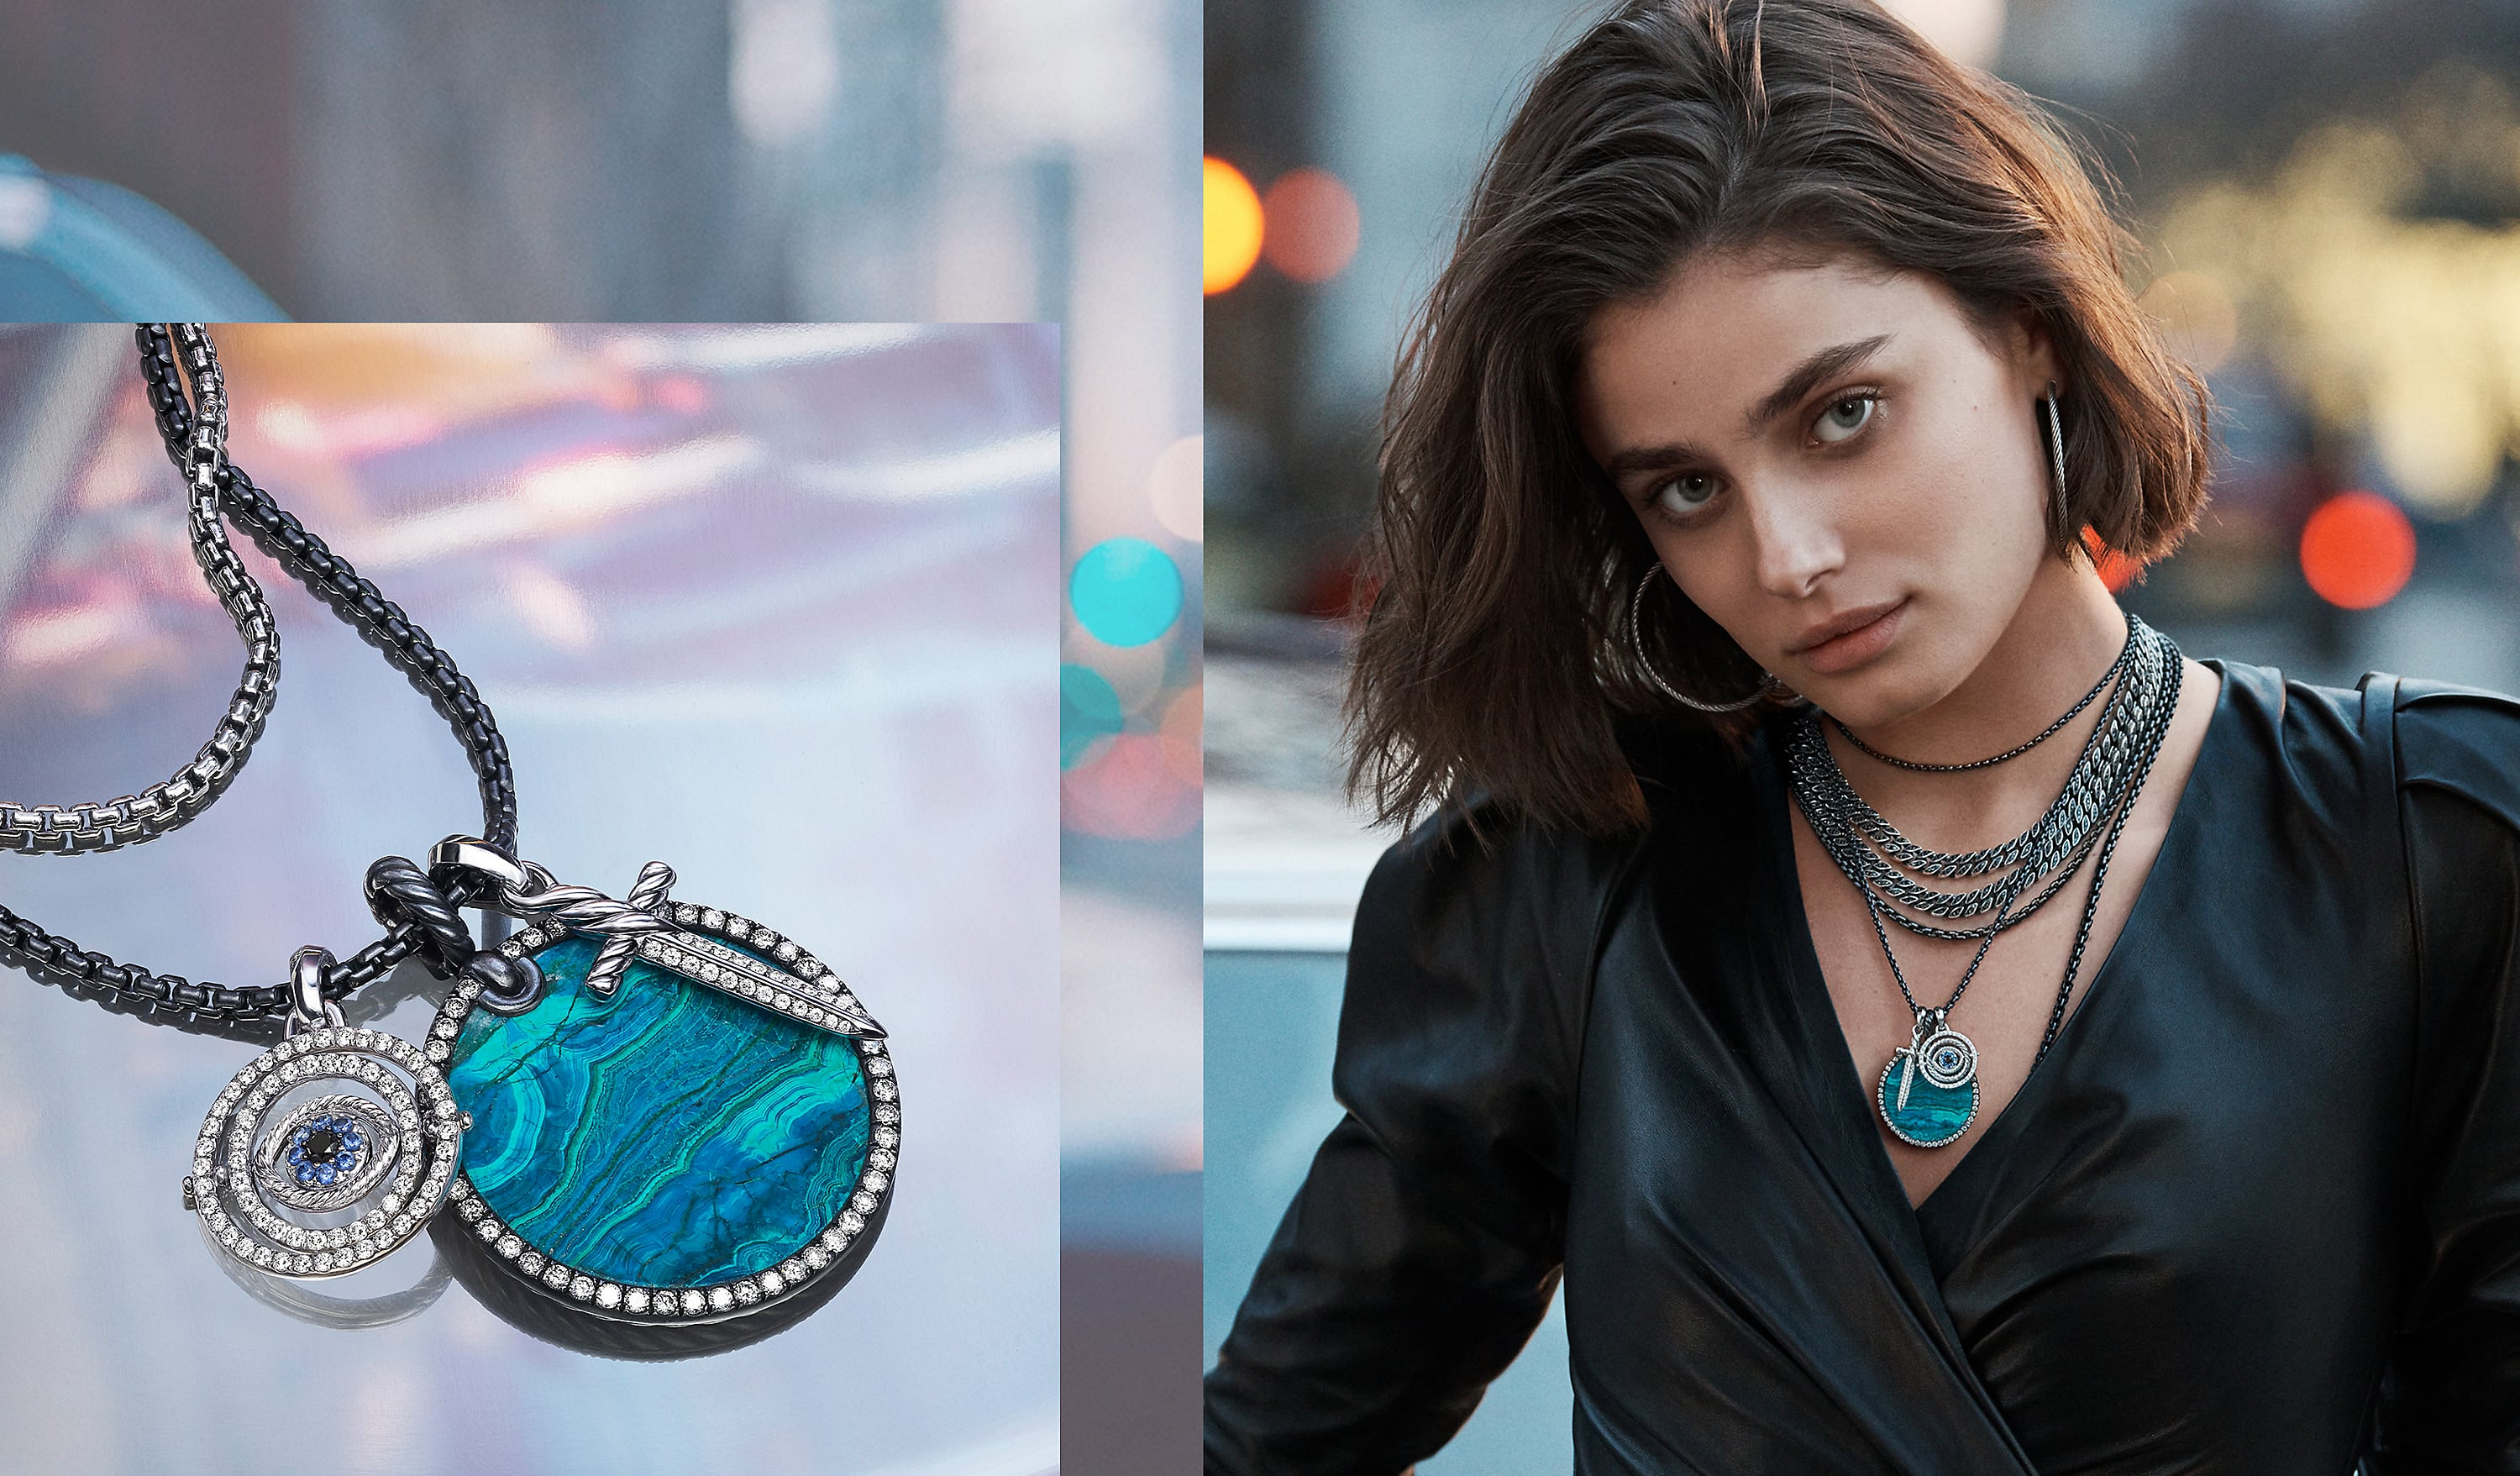 A photo collage shows two color photos side by side. On the left is a close-up shot of two David Yurman chains strung with three amulets (also shown right) on a colorful photo of NYC. The center amulet features a circular piece of chrysocolla surrounded by white diamonds. The other two amulets depict an evil eye and a dagger with white diamonds and blue sapphires. The jewelry is crafted from sterling silver, darkened sterling silver or 18K white gold. On the right is a photo of model Taylor Hill outside in NYC wearing a black dress and David Yurman hoop earrings and multiple chains with the same amulets shown left. The jewelry is crafted from darkened sterling silver or stainless steel or 18K white gold with black or white diamonds and sapphires.